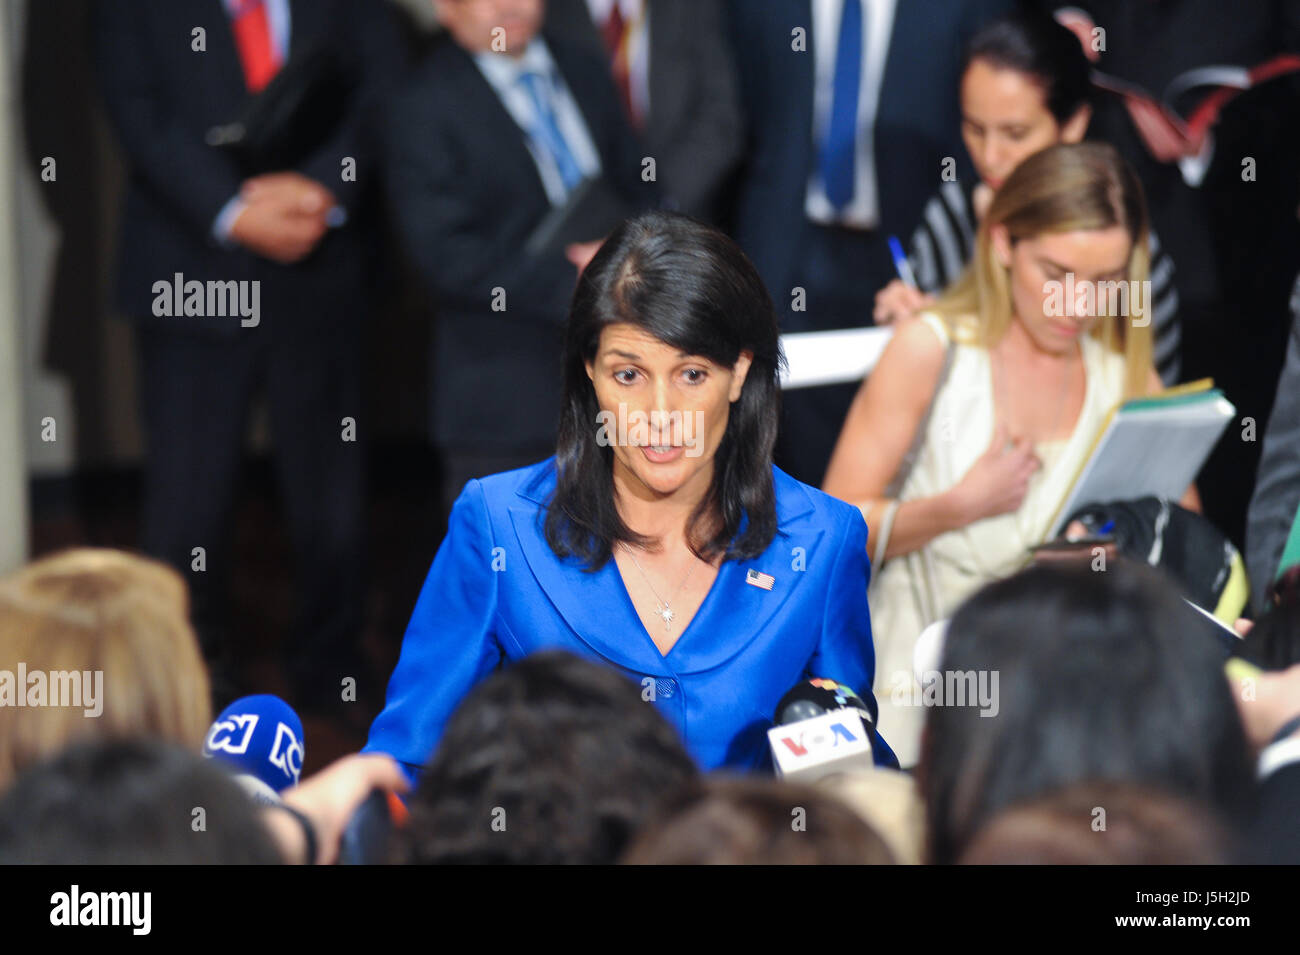 New York, USA. 17th May, 2017. Press conference of the US Ambassador to the UN, Nikki Haley, after the Security - Stock Image